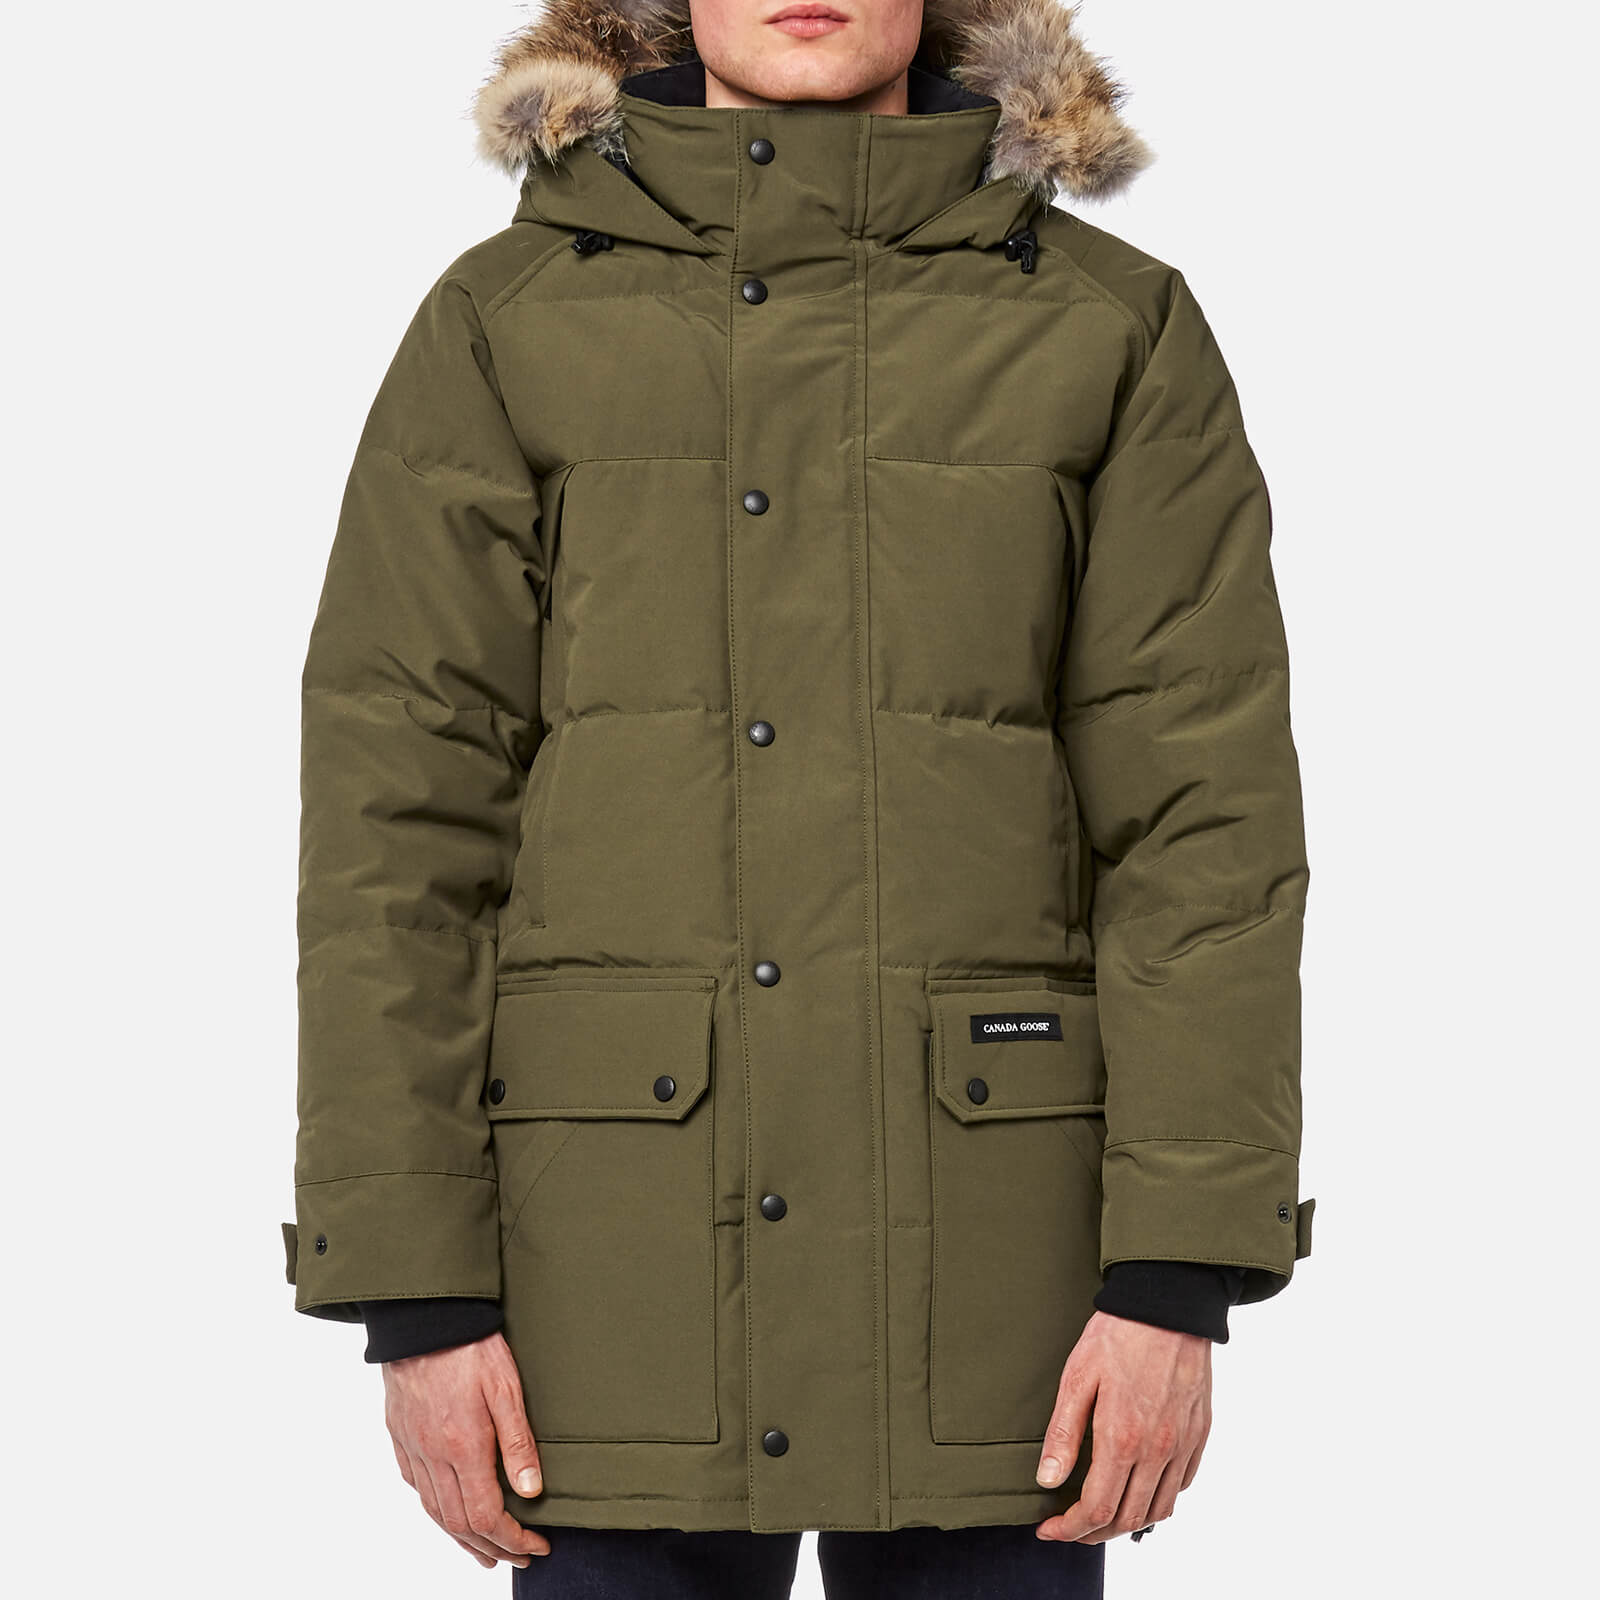 brand new ac258 f09e8 Canada Goose Men's Emory Parka Jacket - Military Green